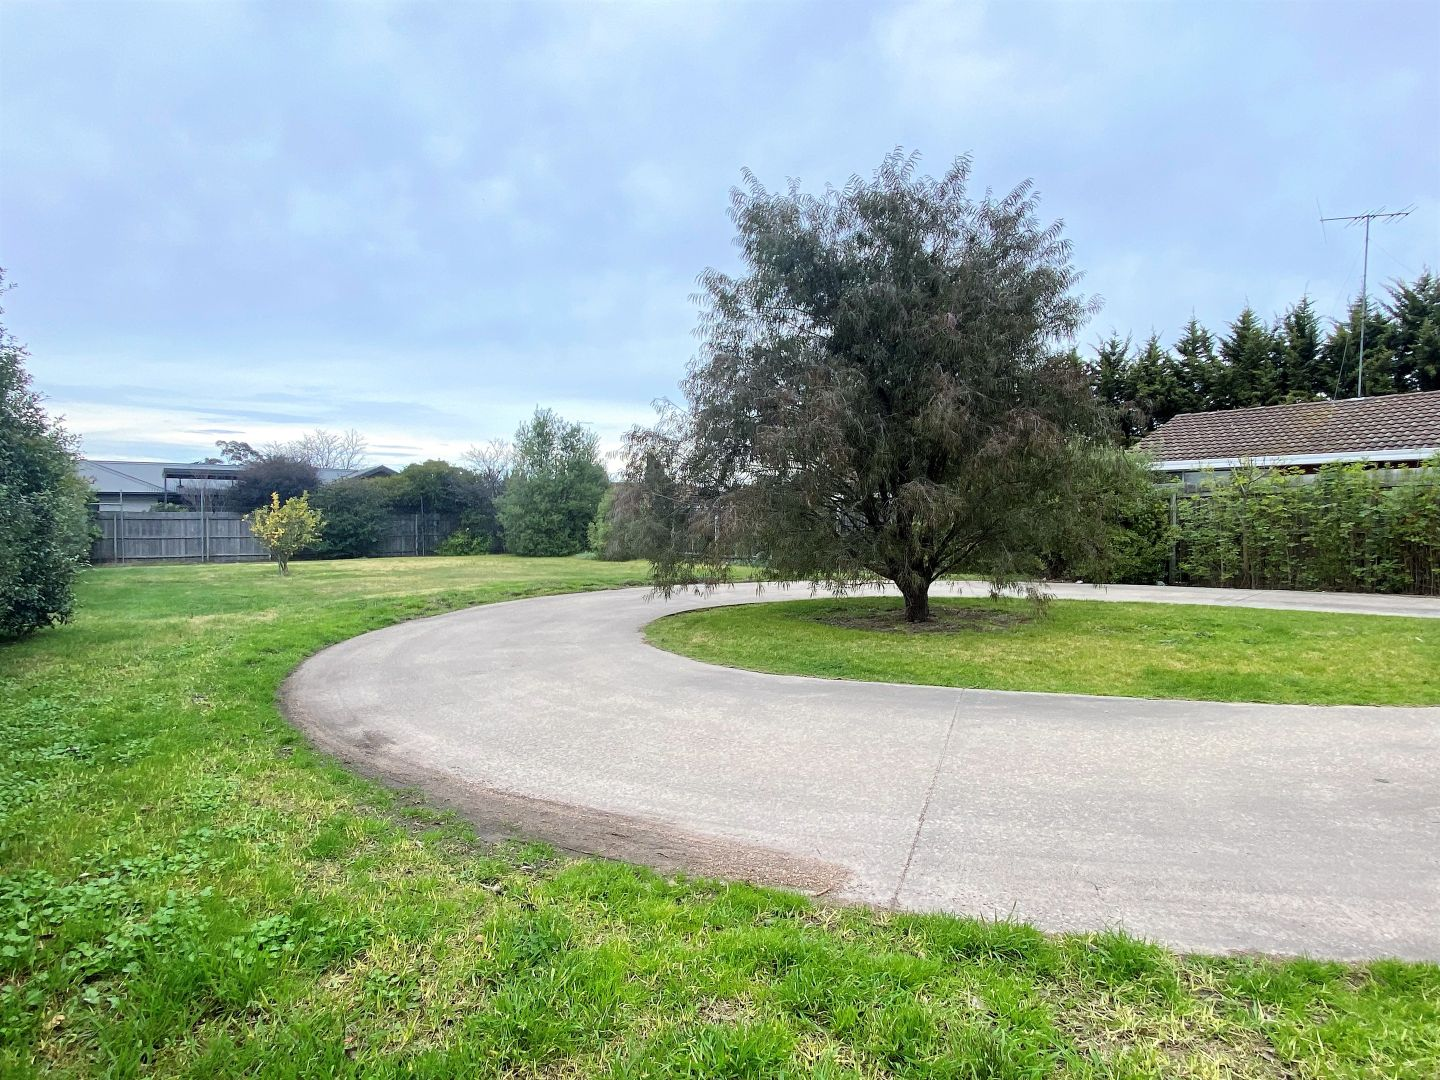 3/99 Day Street, Bairnsdale VIC 3875, Image 1